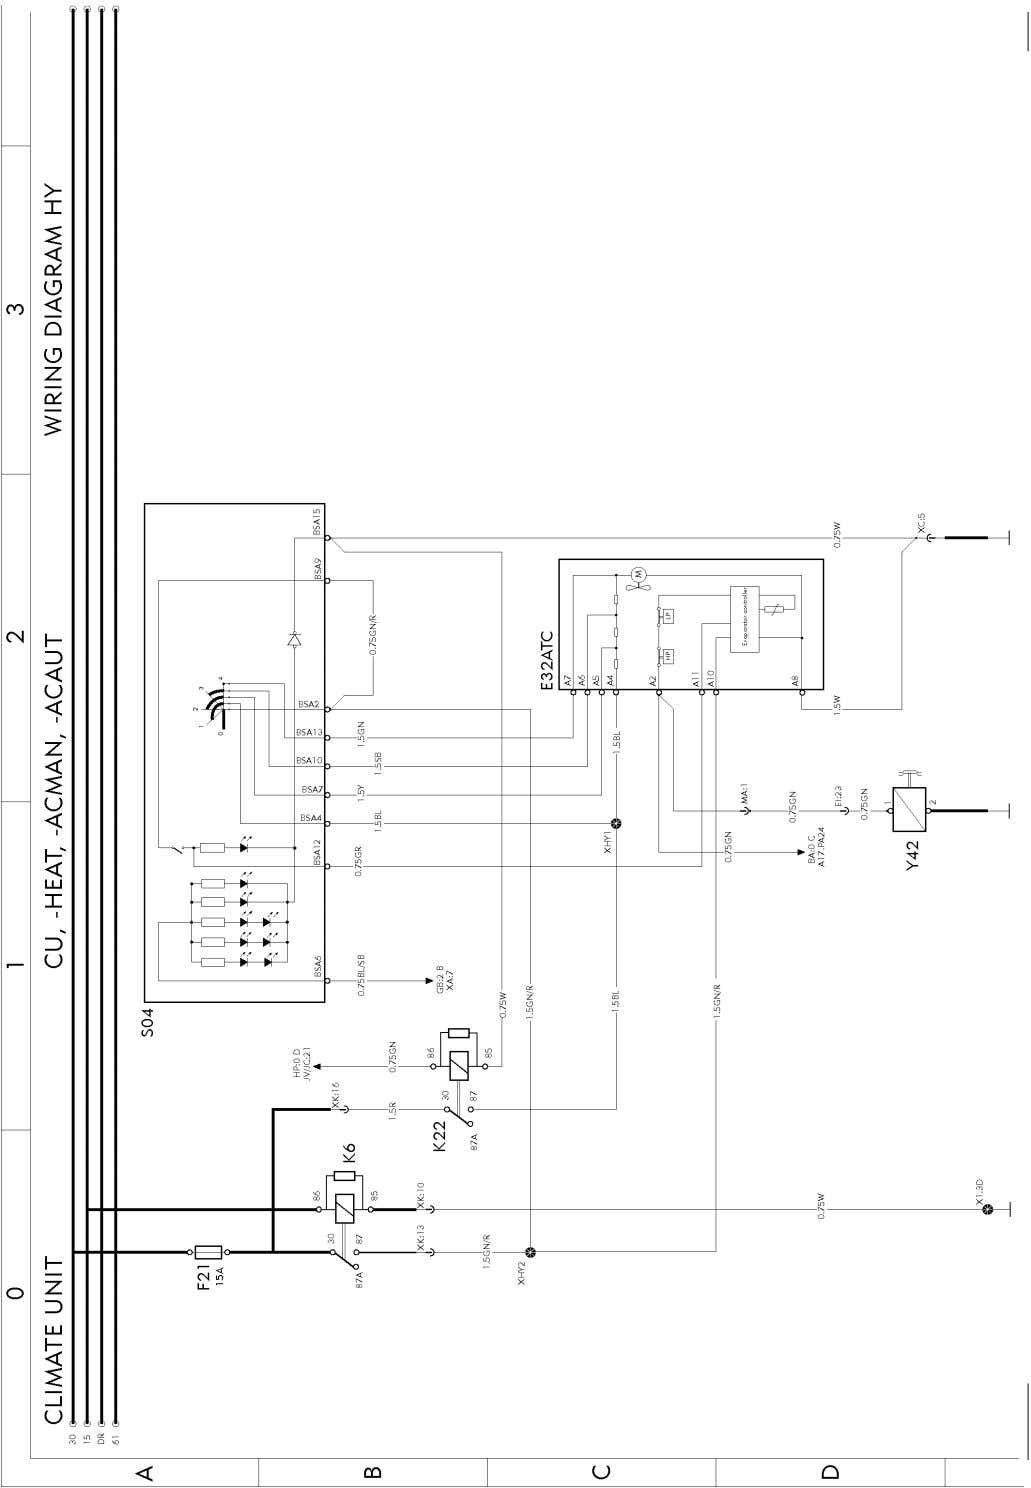 T3021469 Wiring diagram Page 83 (298)